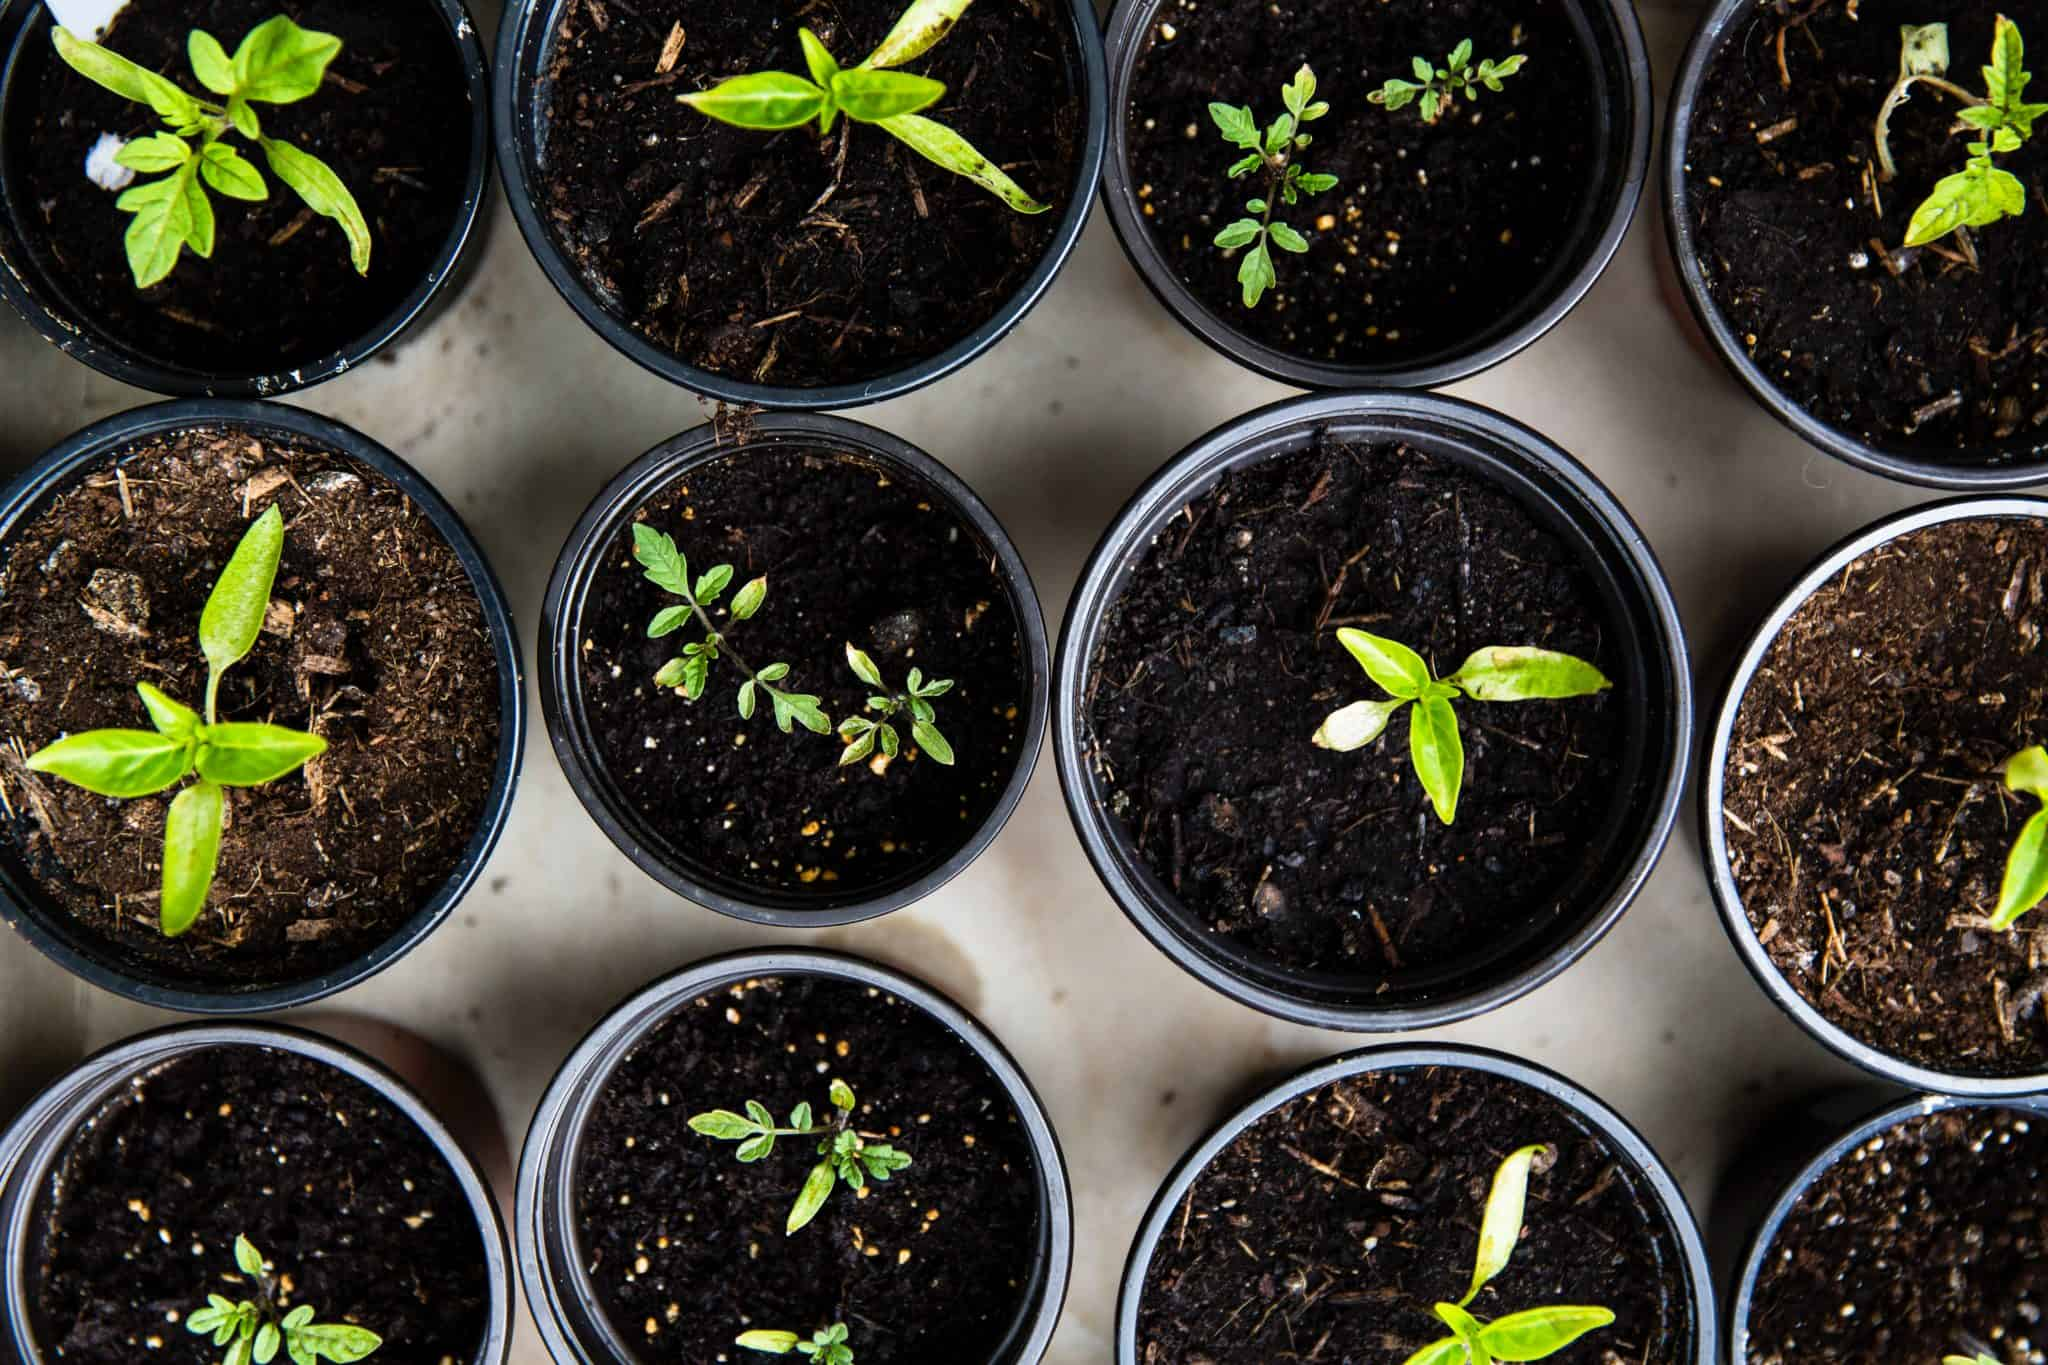 black plastic pots of budding green plants viewed from above